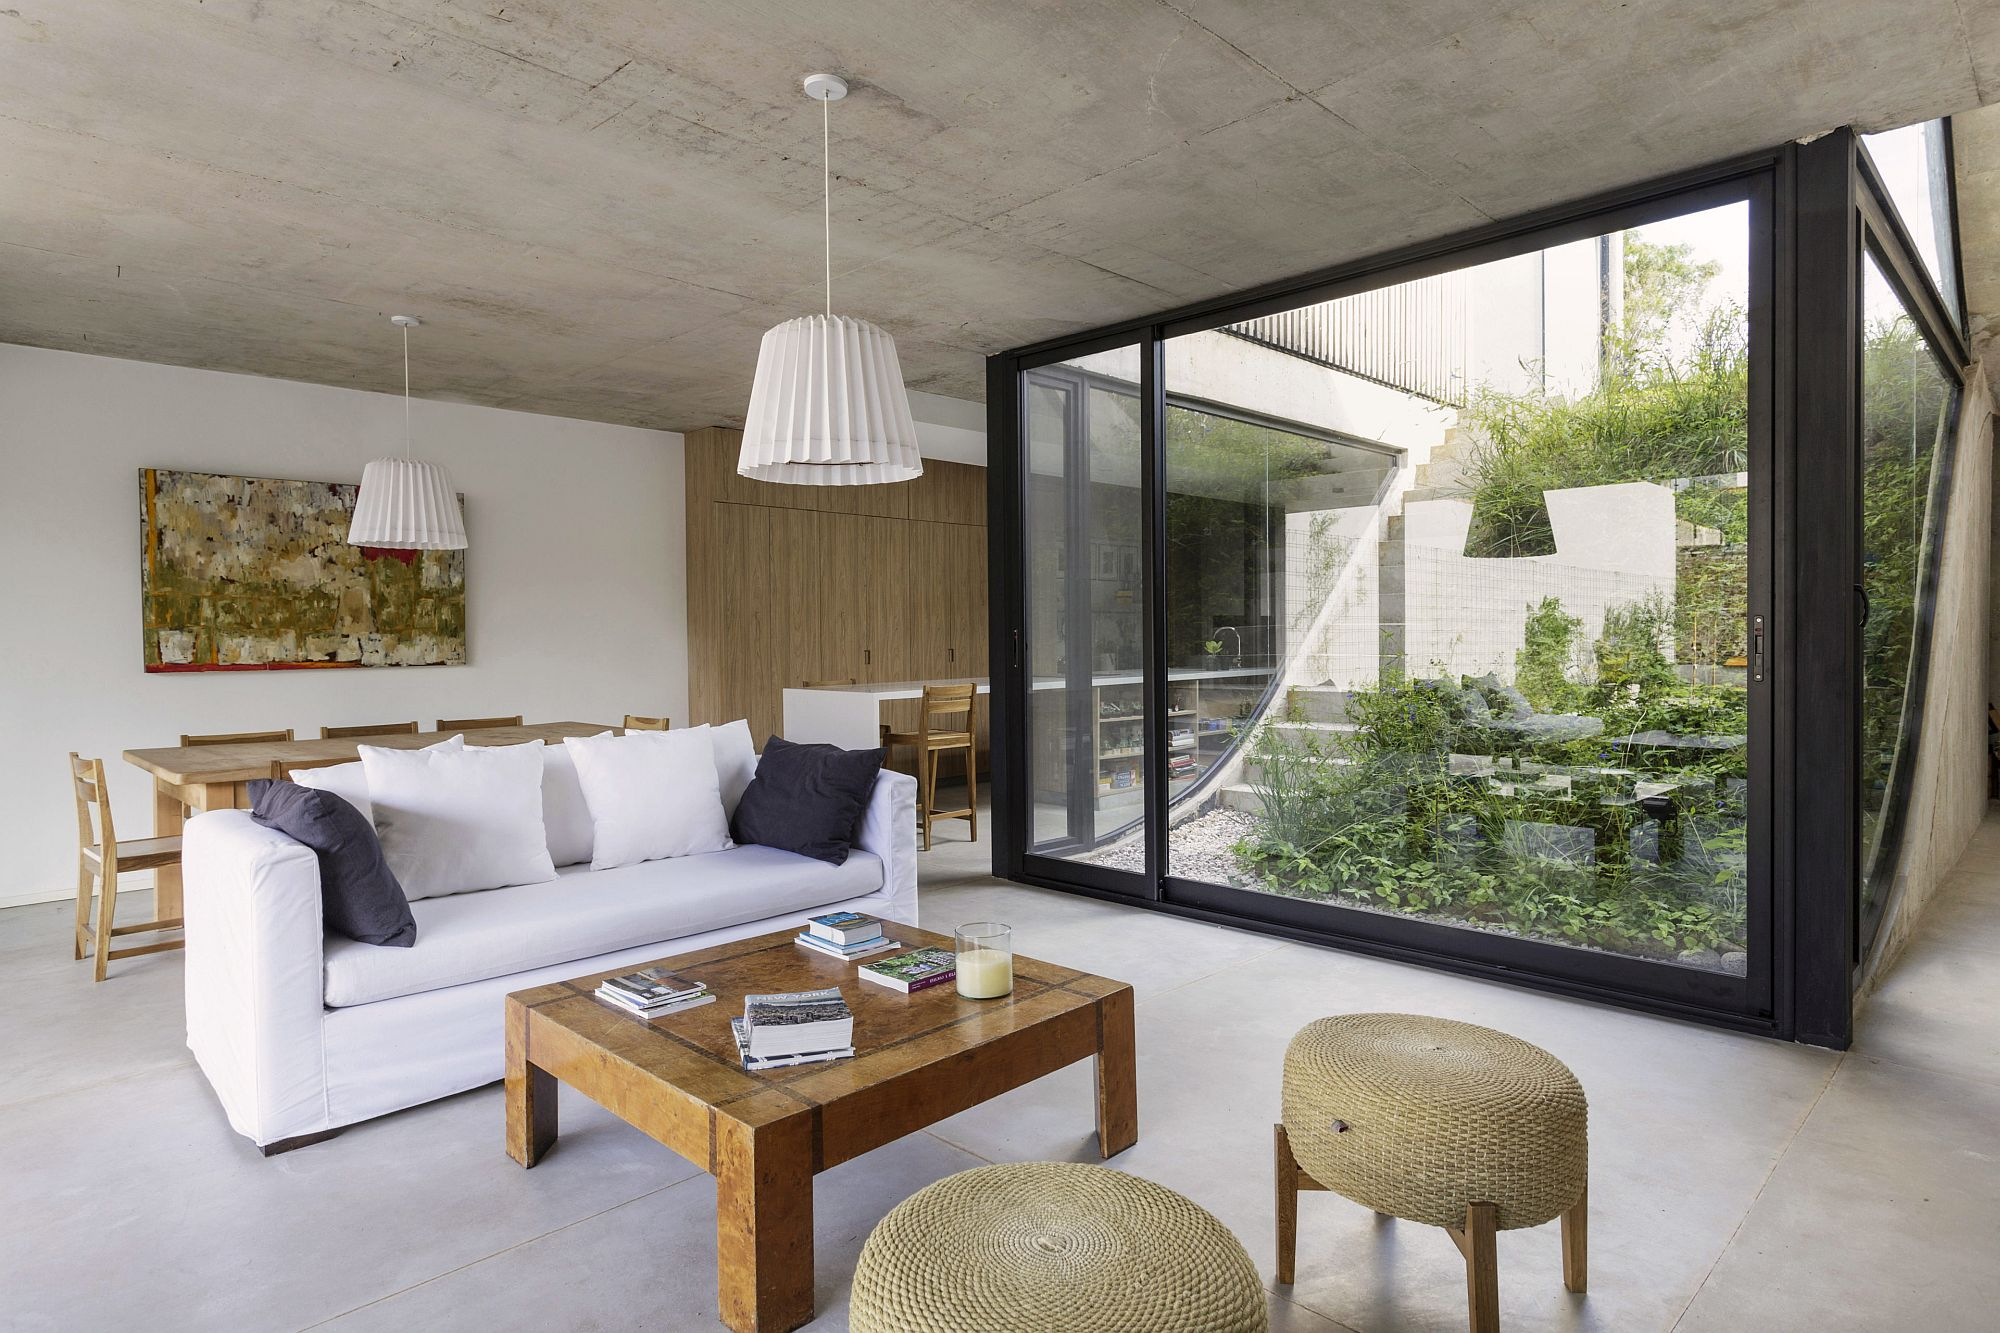 Living room of the house in white and wood with plenty of natural light flowing in